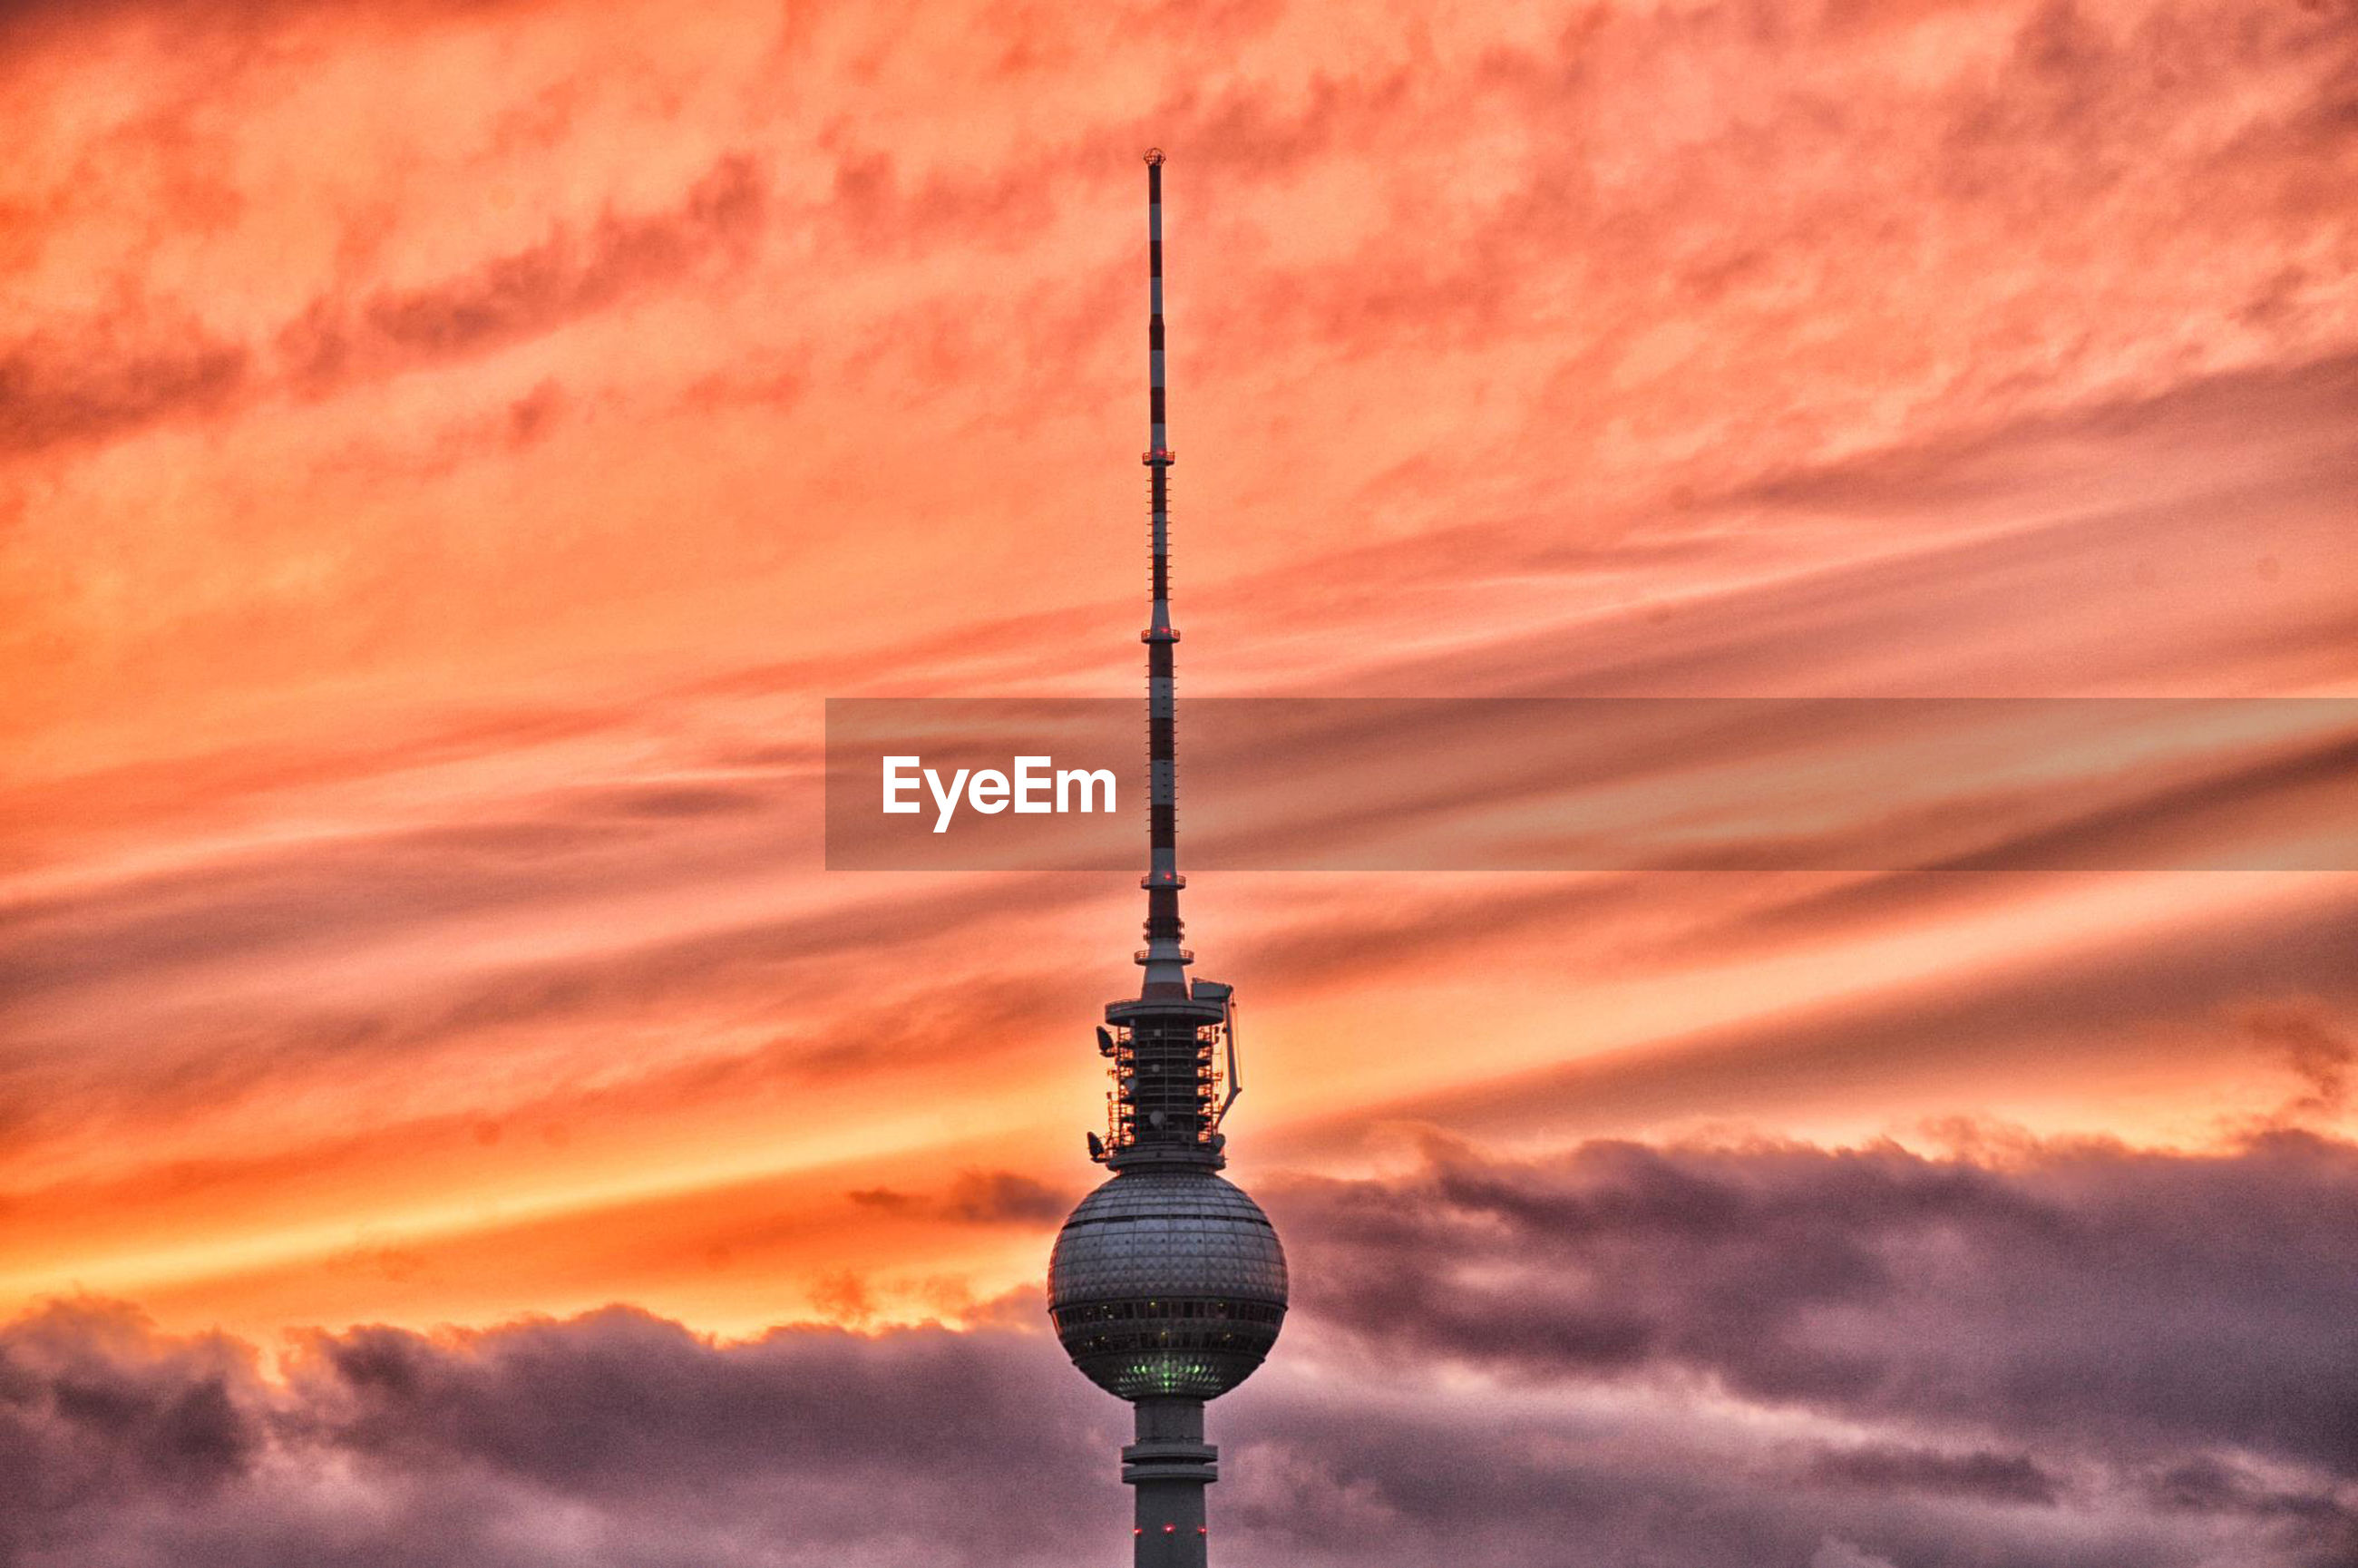 Low angle view of fernsehturm against cloudy sky during sunset